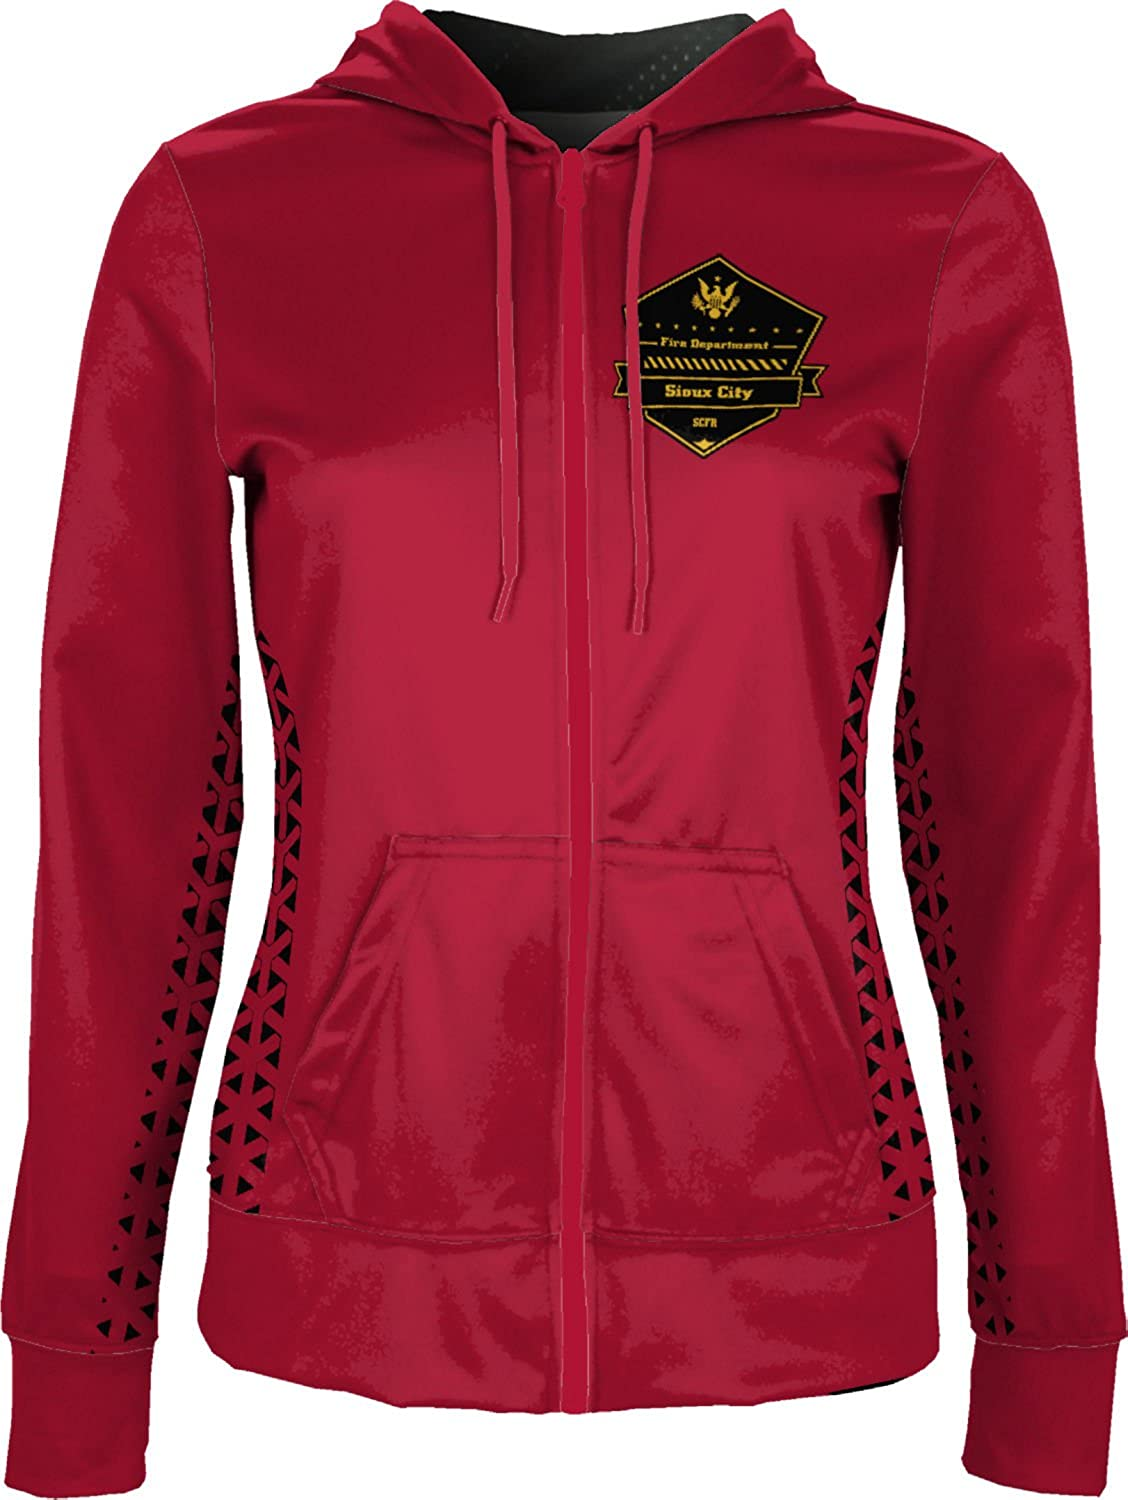 Women's Sioux City Fire Rescue Fire Department Geometric Fullzip Hoodie